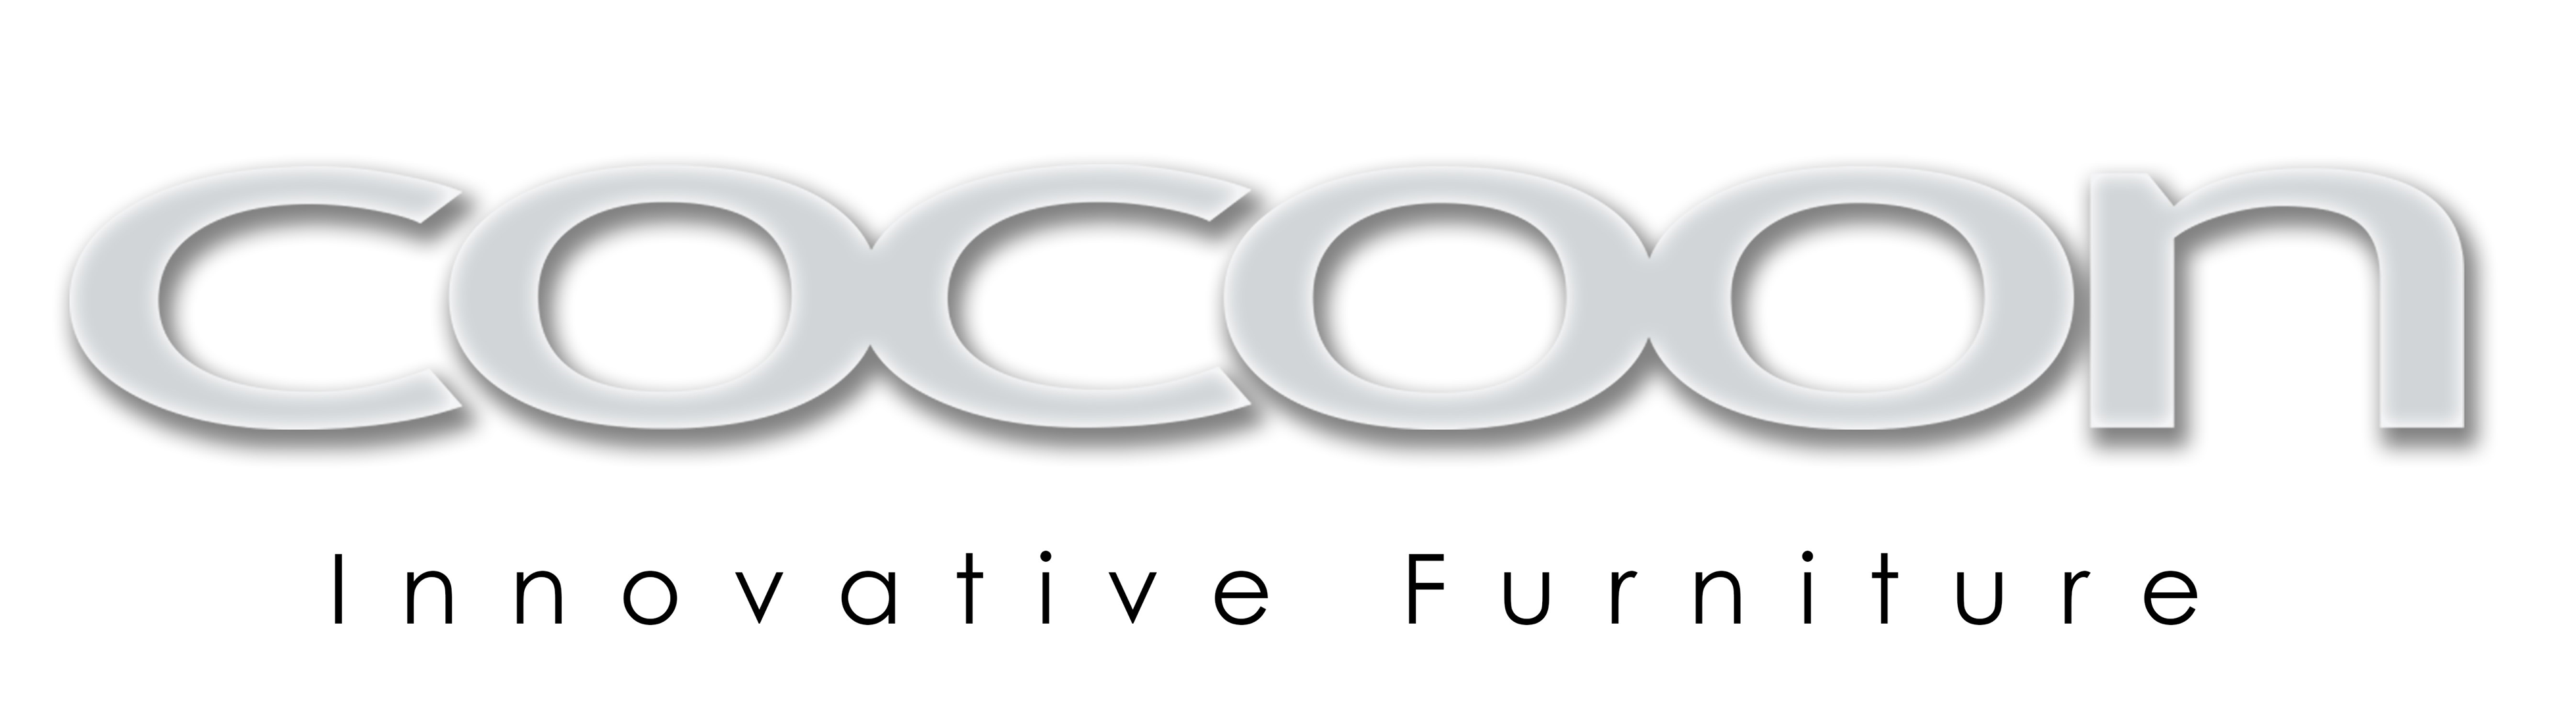 Cocoon brand